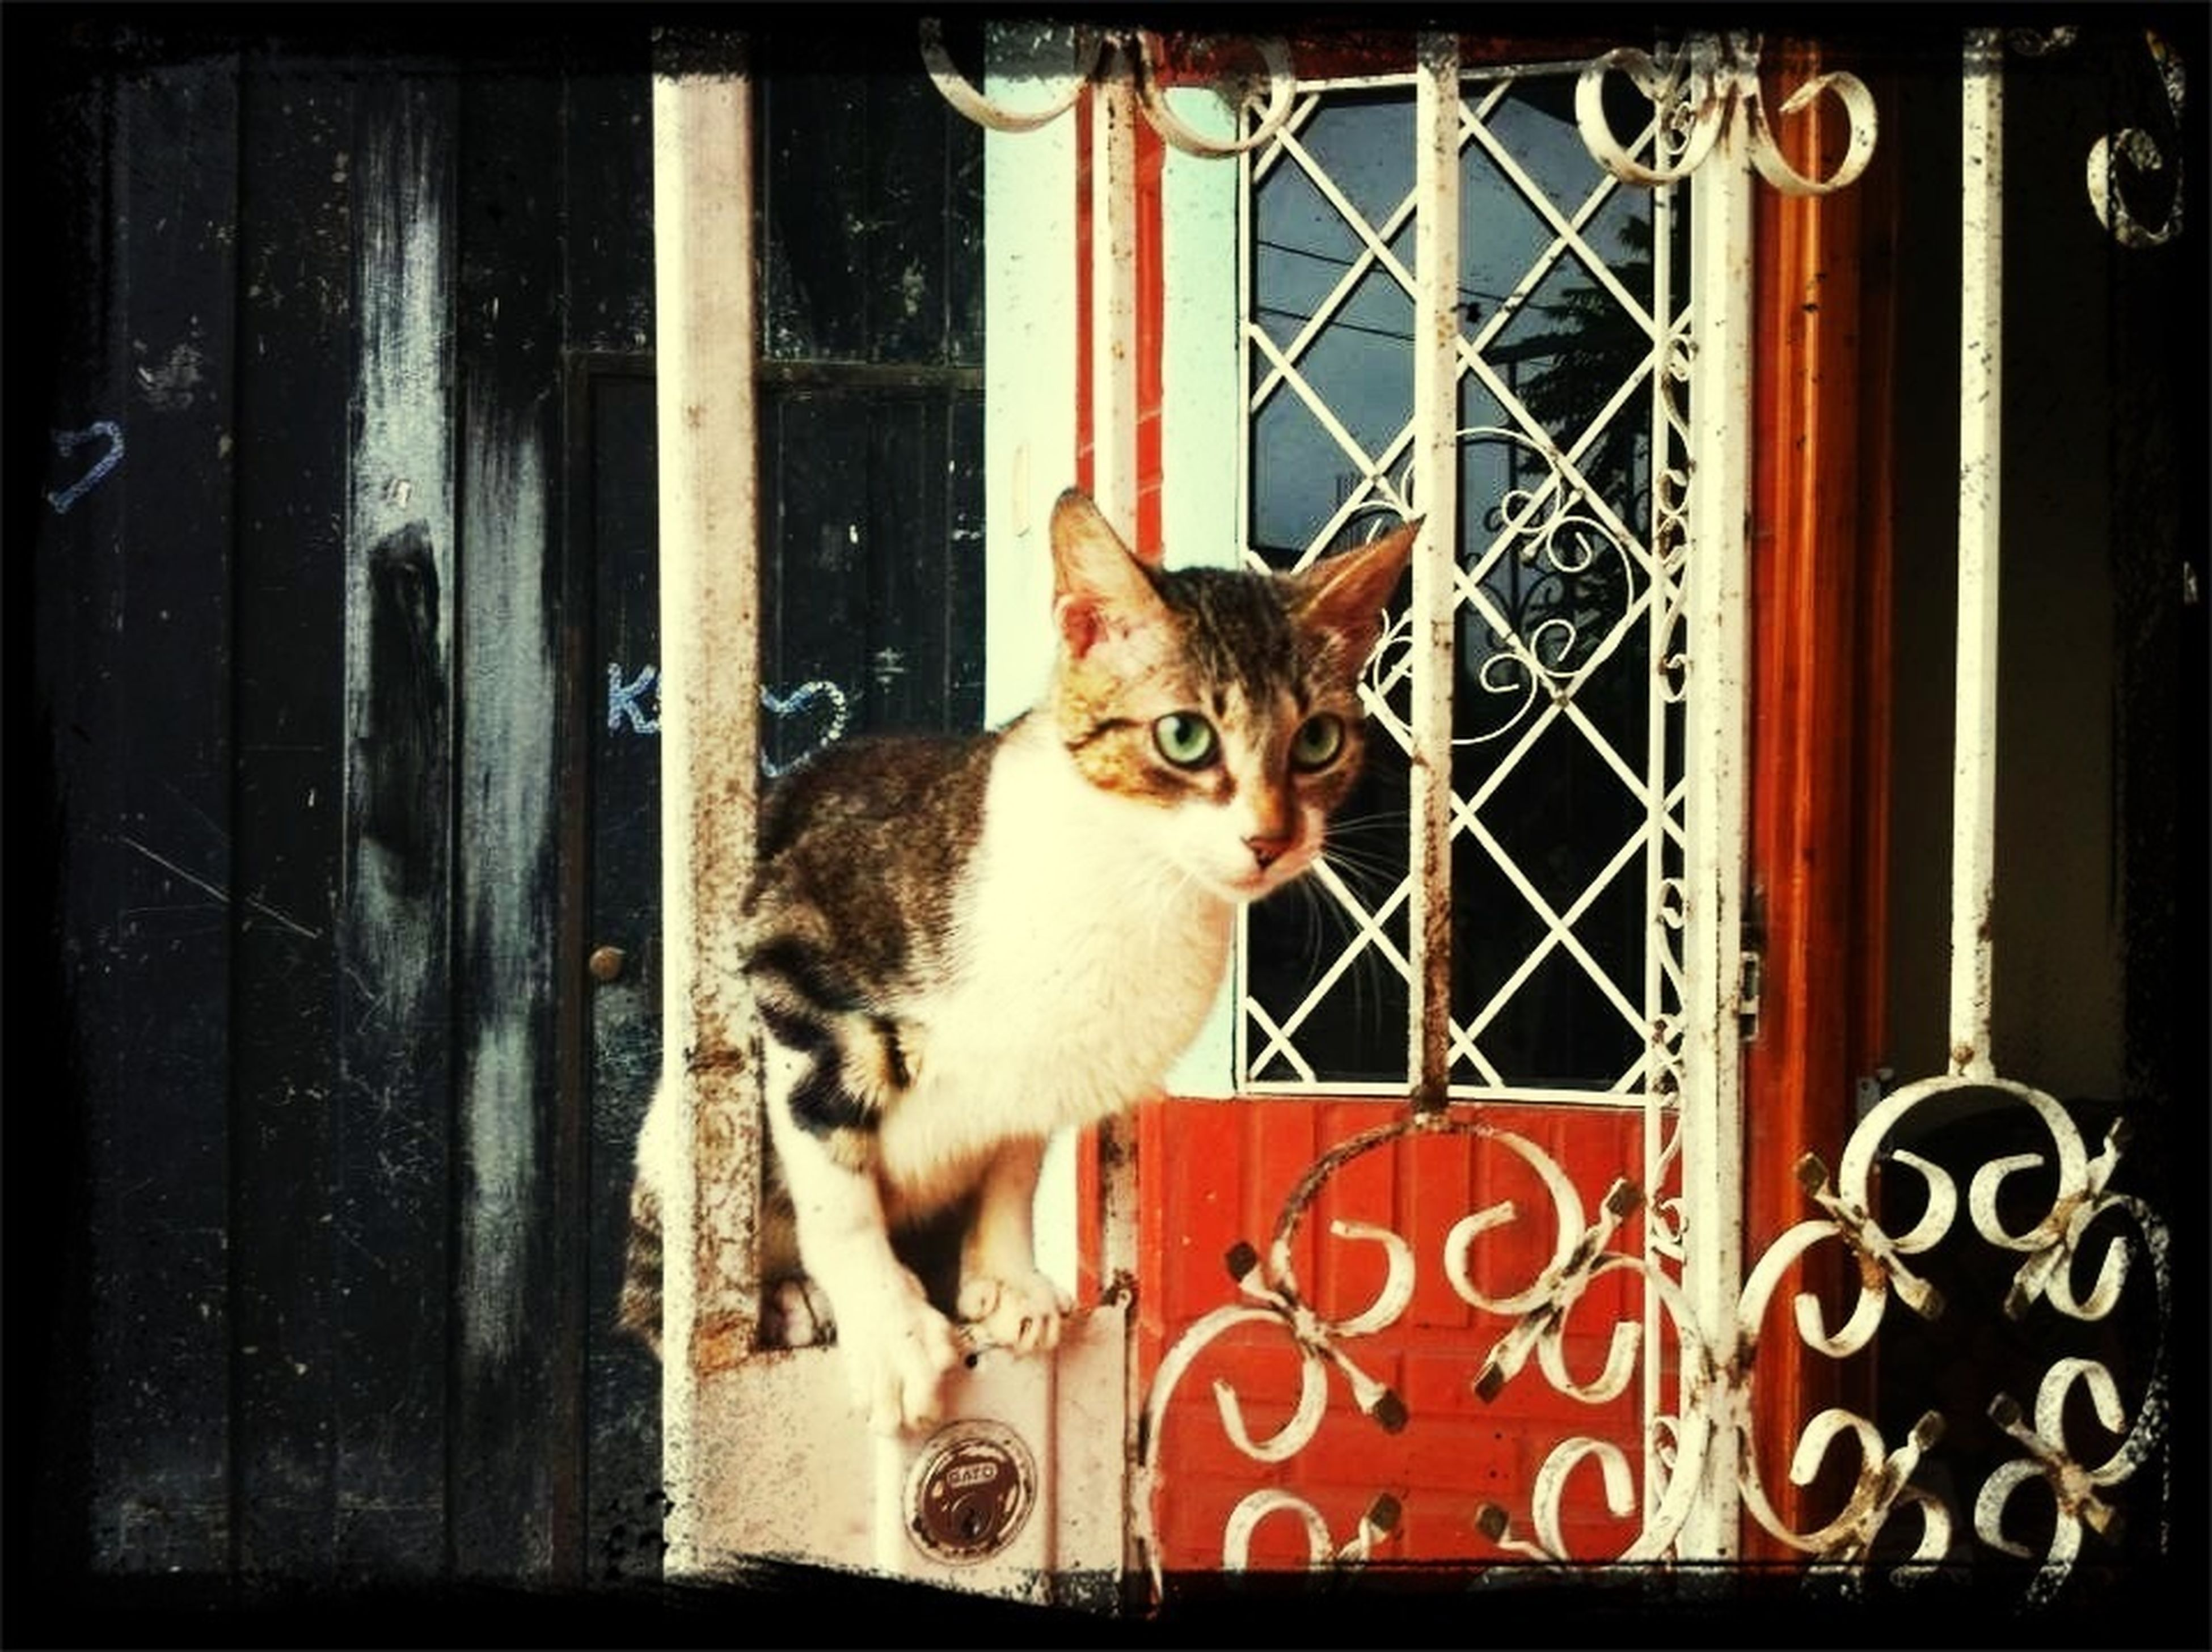 pets, animal themes, domestic animals, one animal, mammal, domestic cat, portrait, cat, window, looking at camera, feline, sitting, door, metal, front view, indoors, close-up, whisker, no people